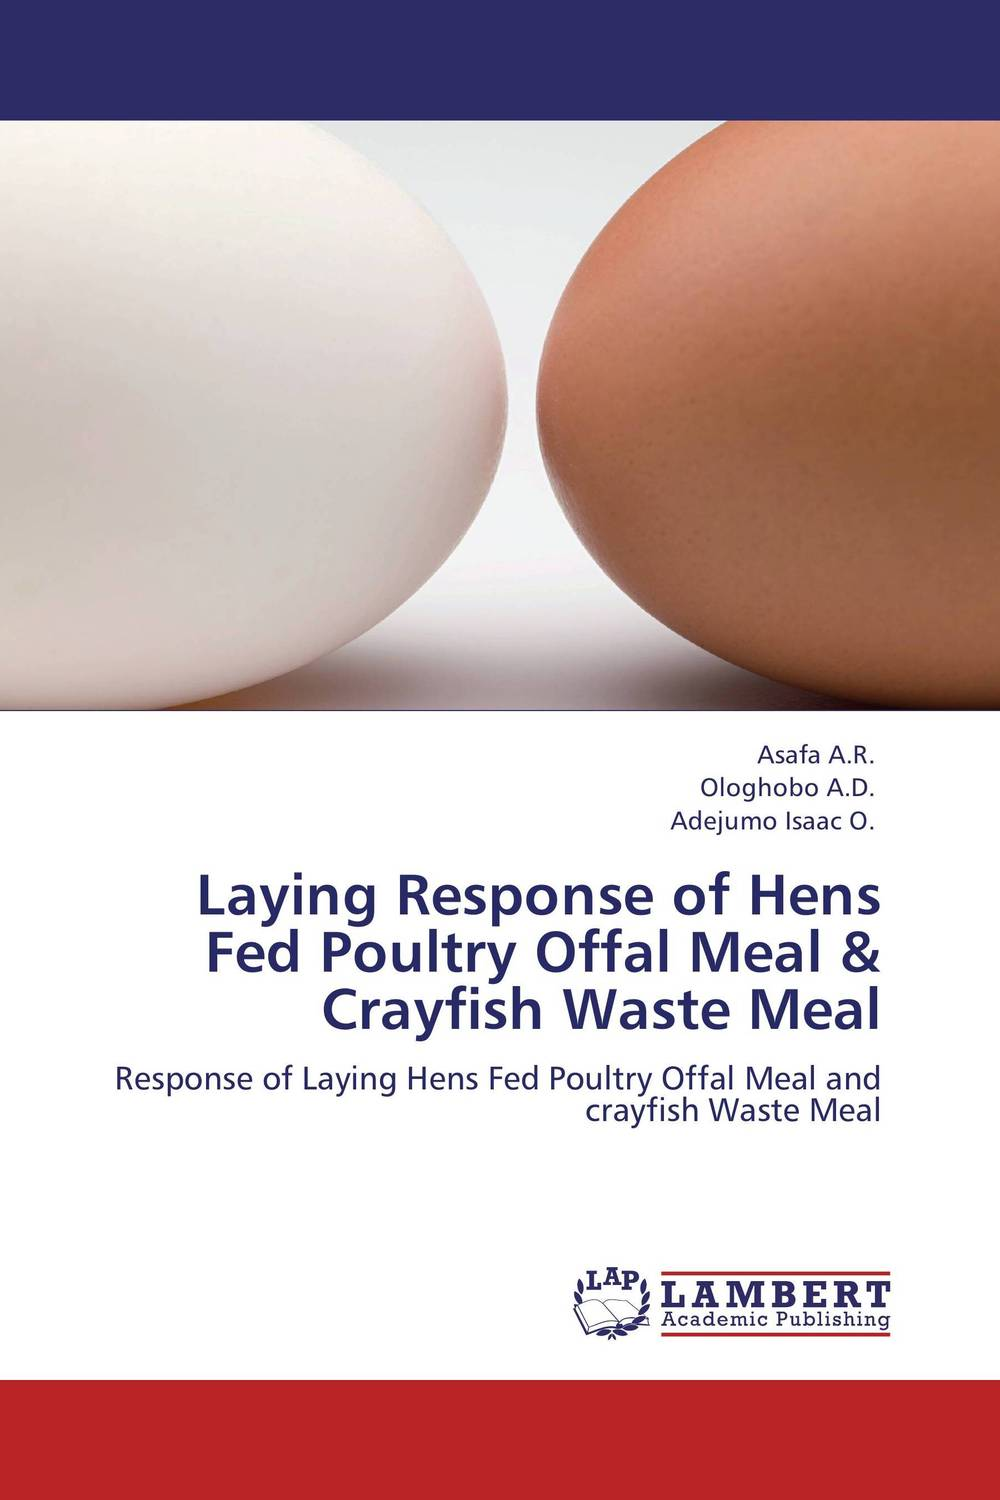 купить Laying Response of Hens Fed Poultry Offal Meal & Crayfish Waste Meal недорого